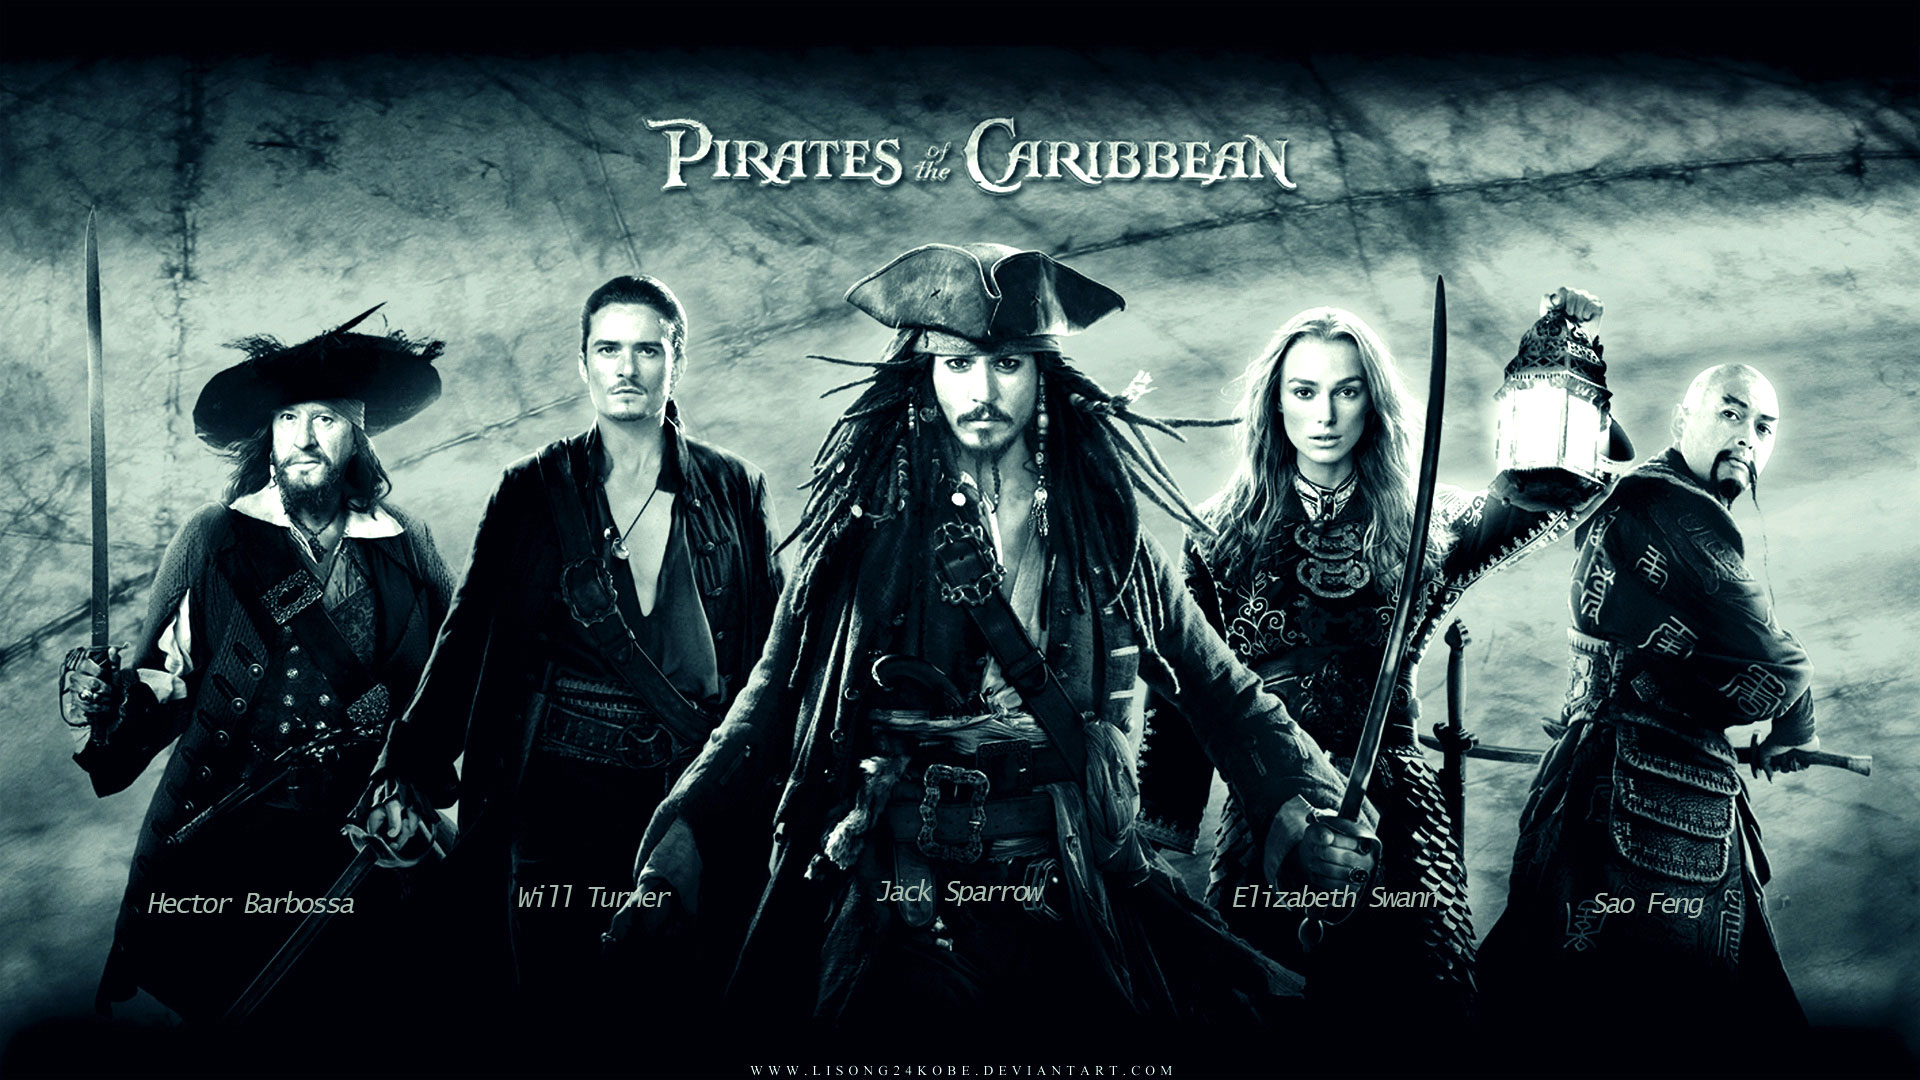 Pirates of the caribbean hd wallpaper background image 1920x1080 id 507238 wallpaper abyss - Pirates of the caribbean images hd ...